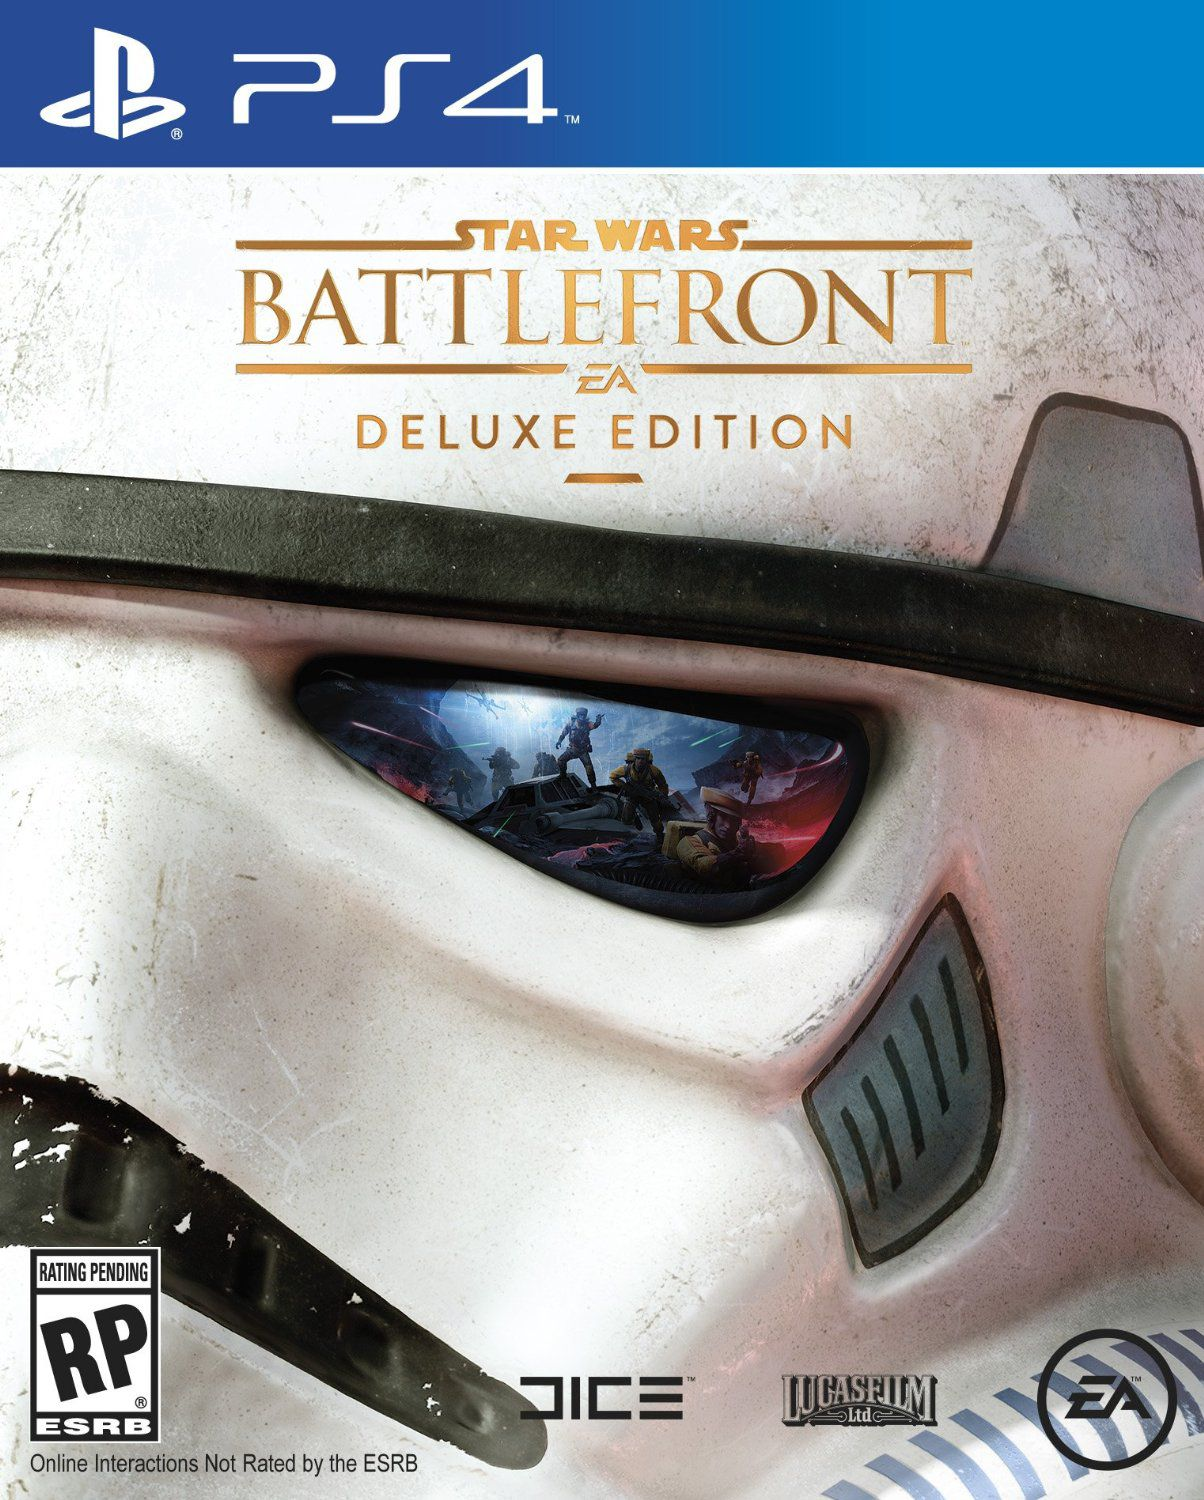 Star Wars Battlefront's Deluxe Edition has gorgeous box ...